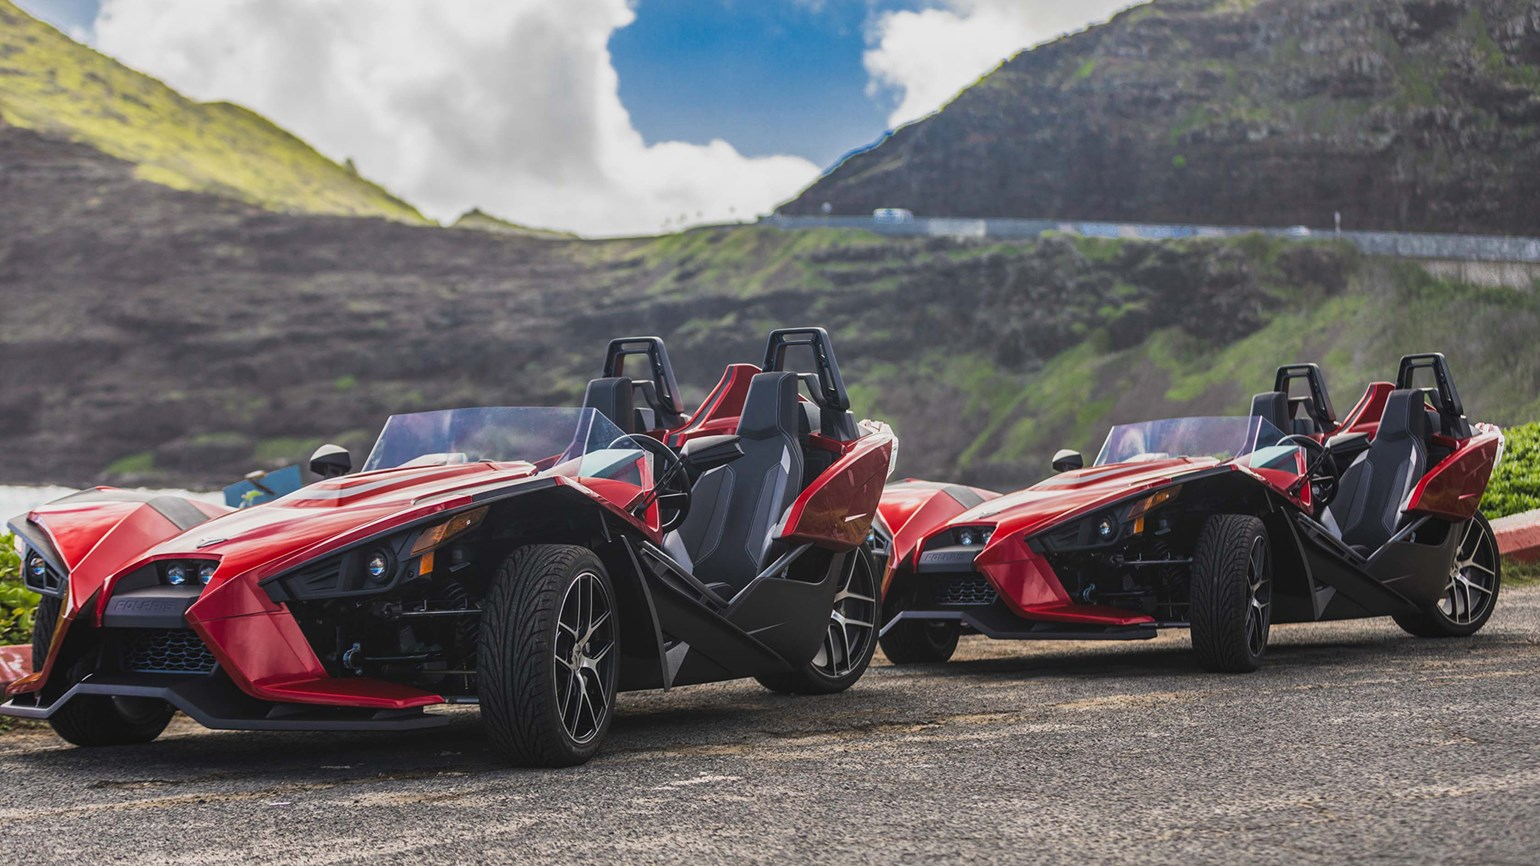 Three-wheeled Slingshots now available in Waikiki